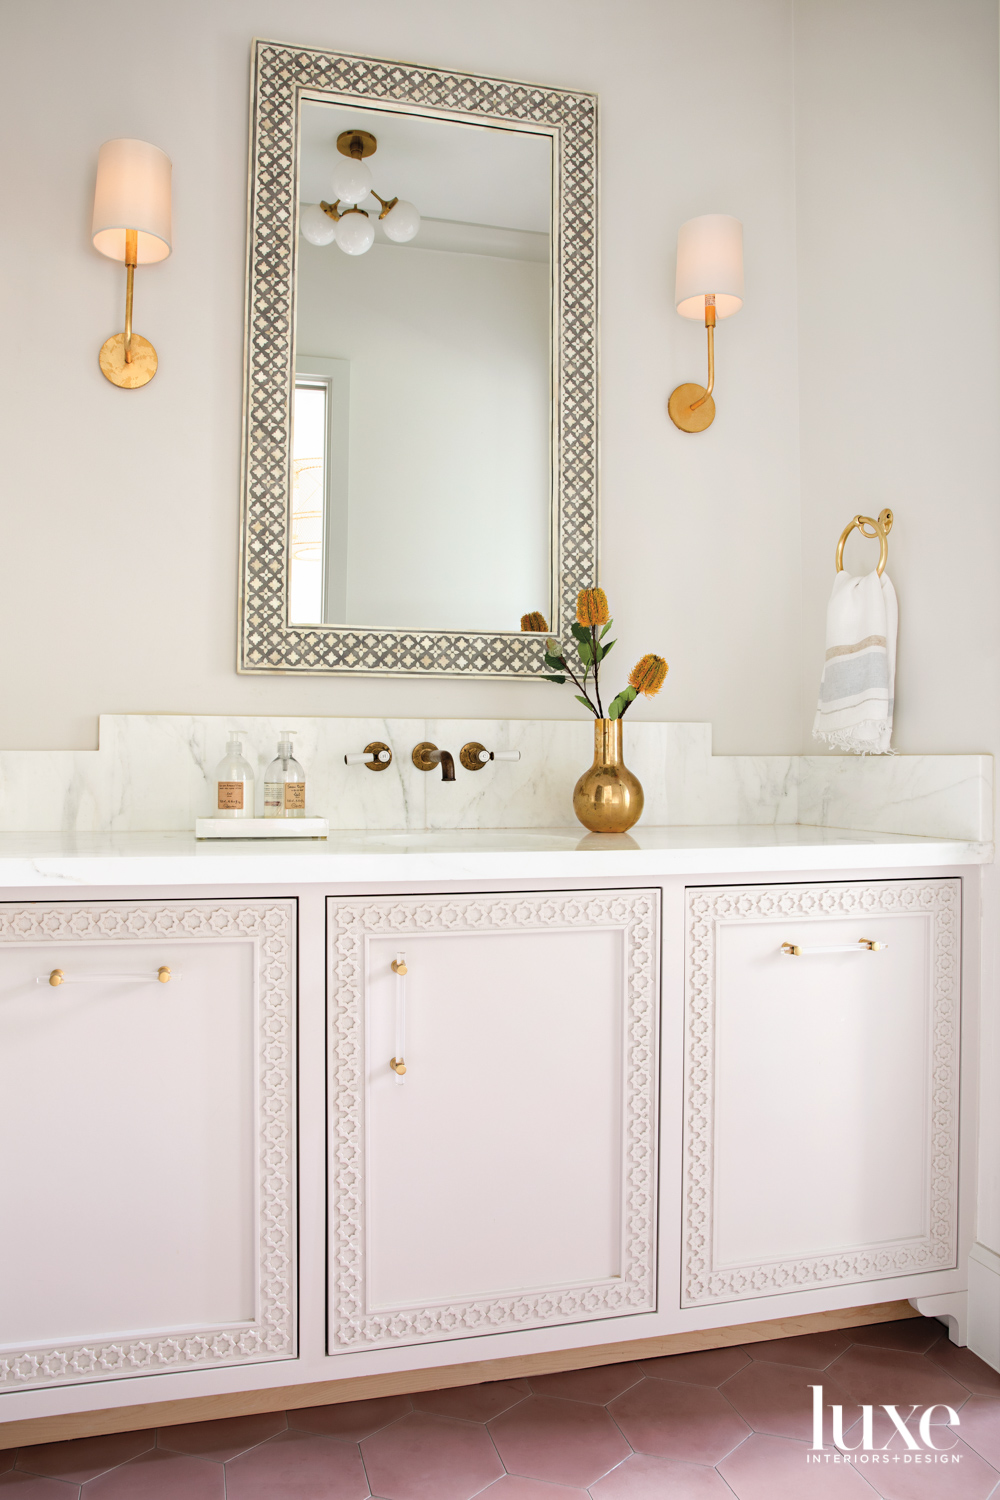 bathroom with moroccan-style accents